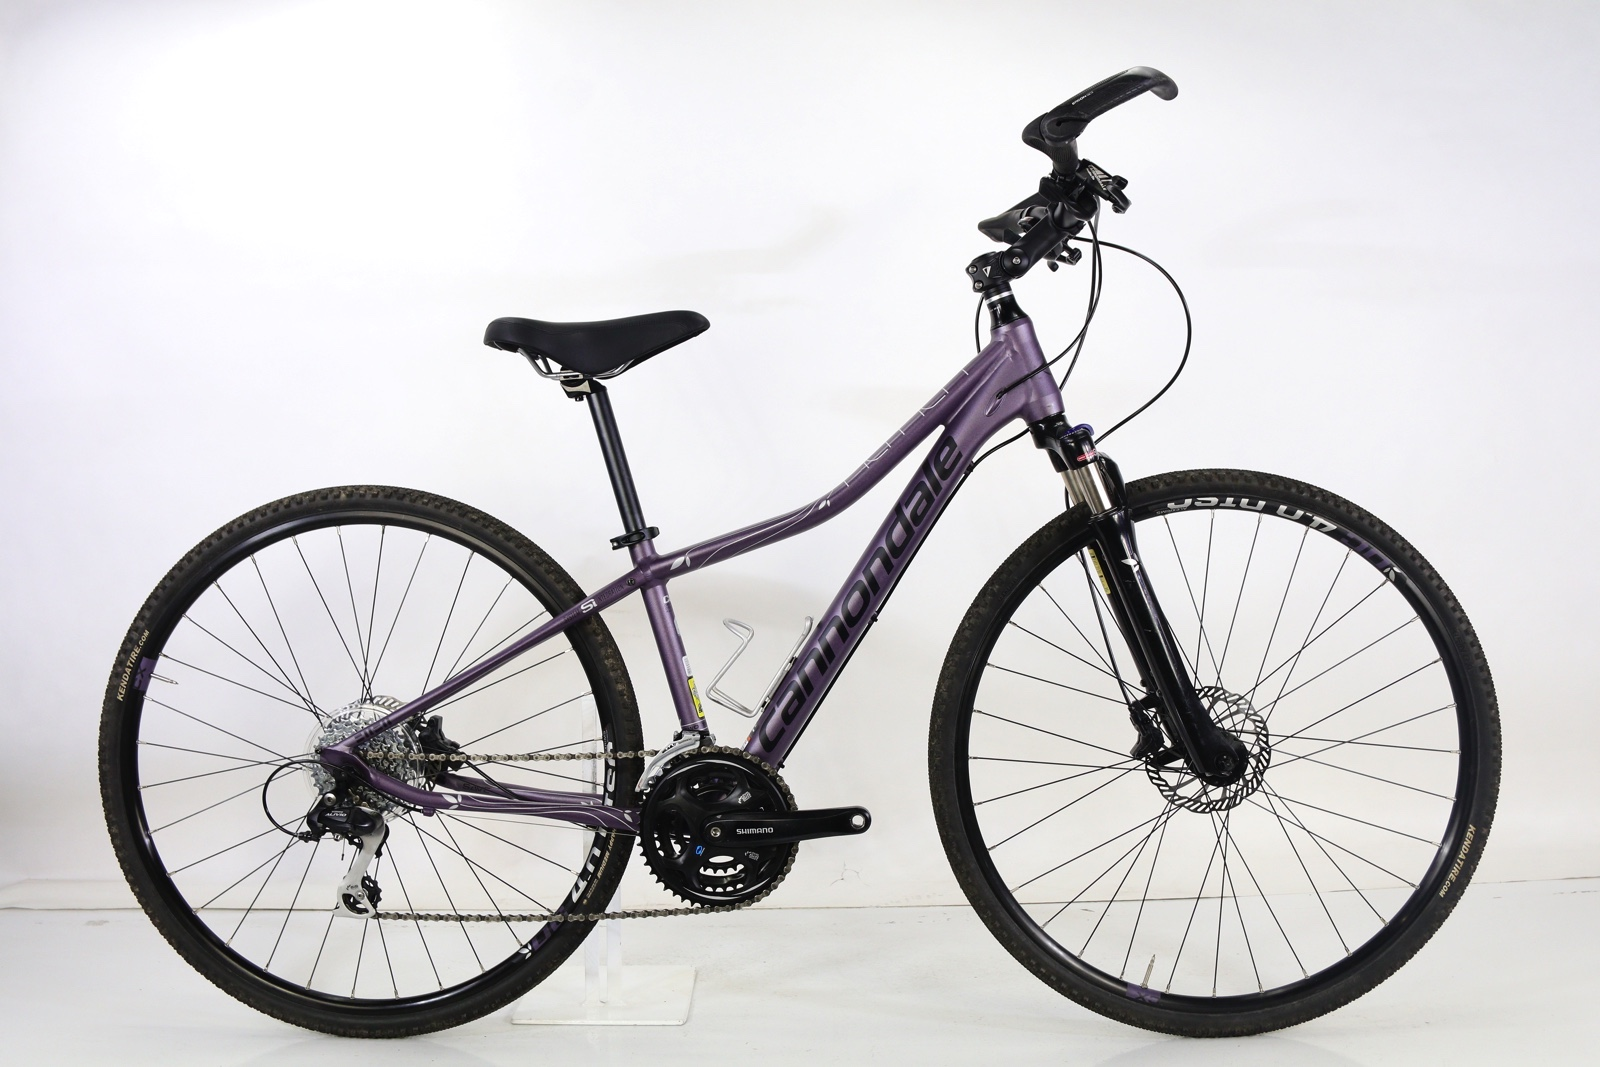 ca90a417c83 Cannondale Althea 2 - Women's For Sale - 14792 - BicycleBlueBook.com